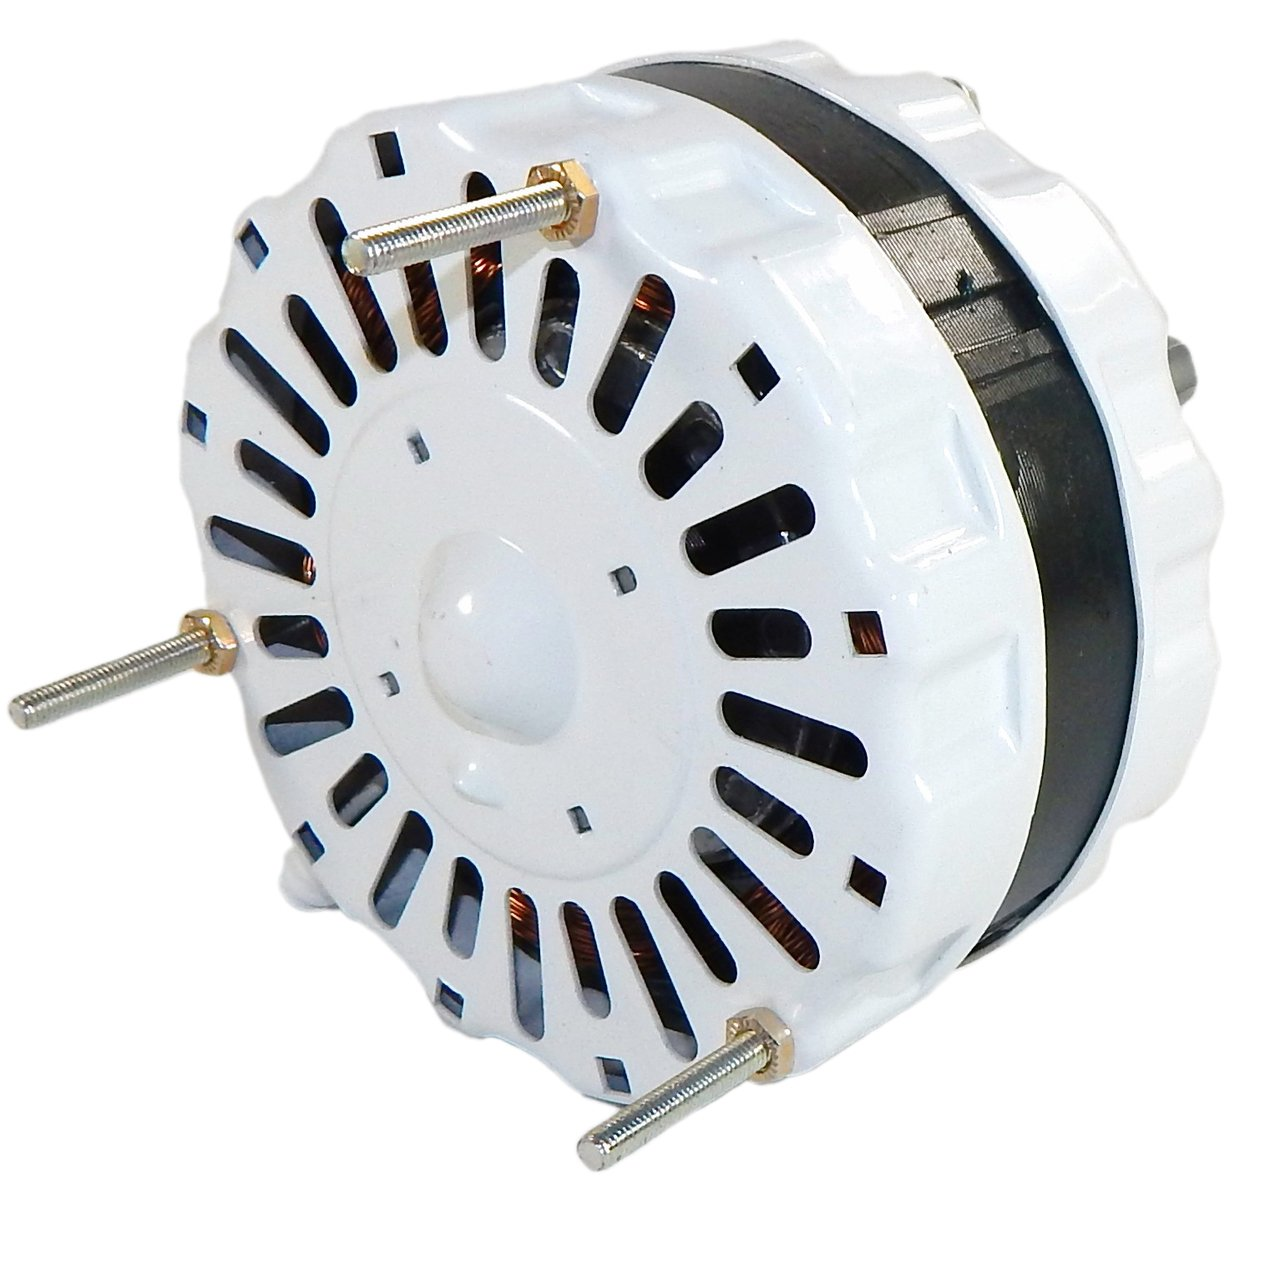 115 volts Nutone Motor Assembly # 97017706 1550 RPM; 1.2 amps 8664RP